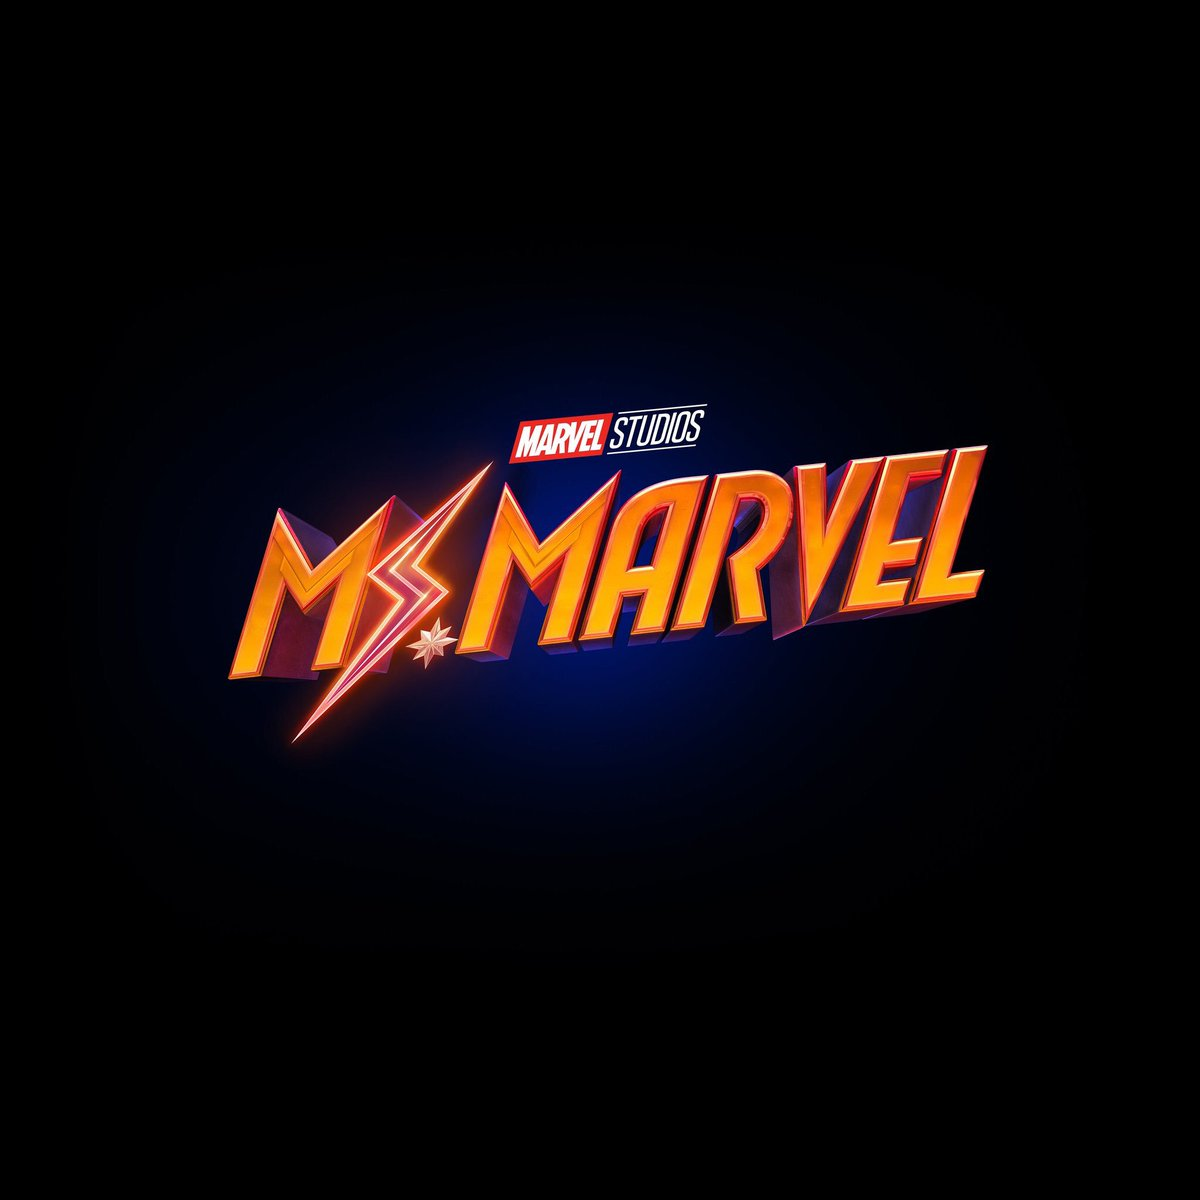 LOOK AT THE LOGO! He Hala Star! #CaptainMarvel will indeed join Kamala Kahn! <br>http://pic.twitter.com/De5yv5qzXM